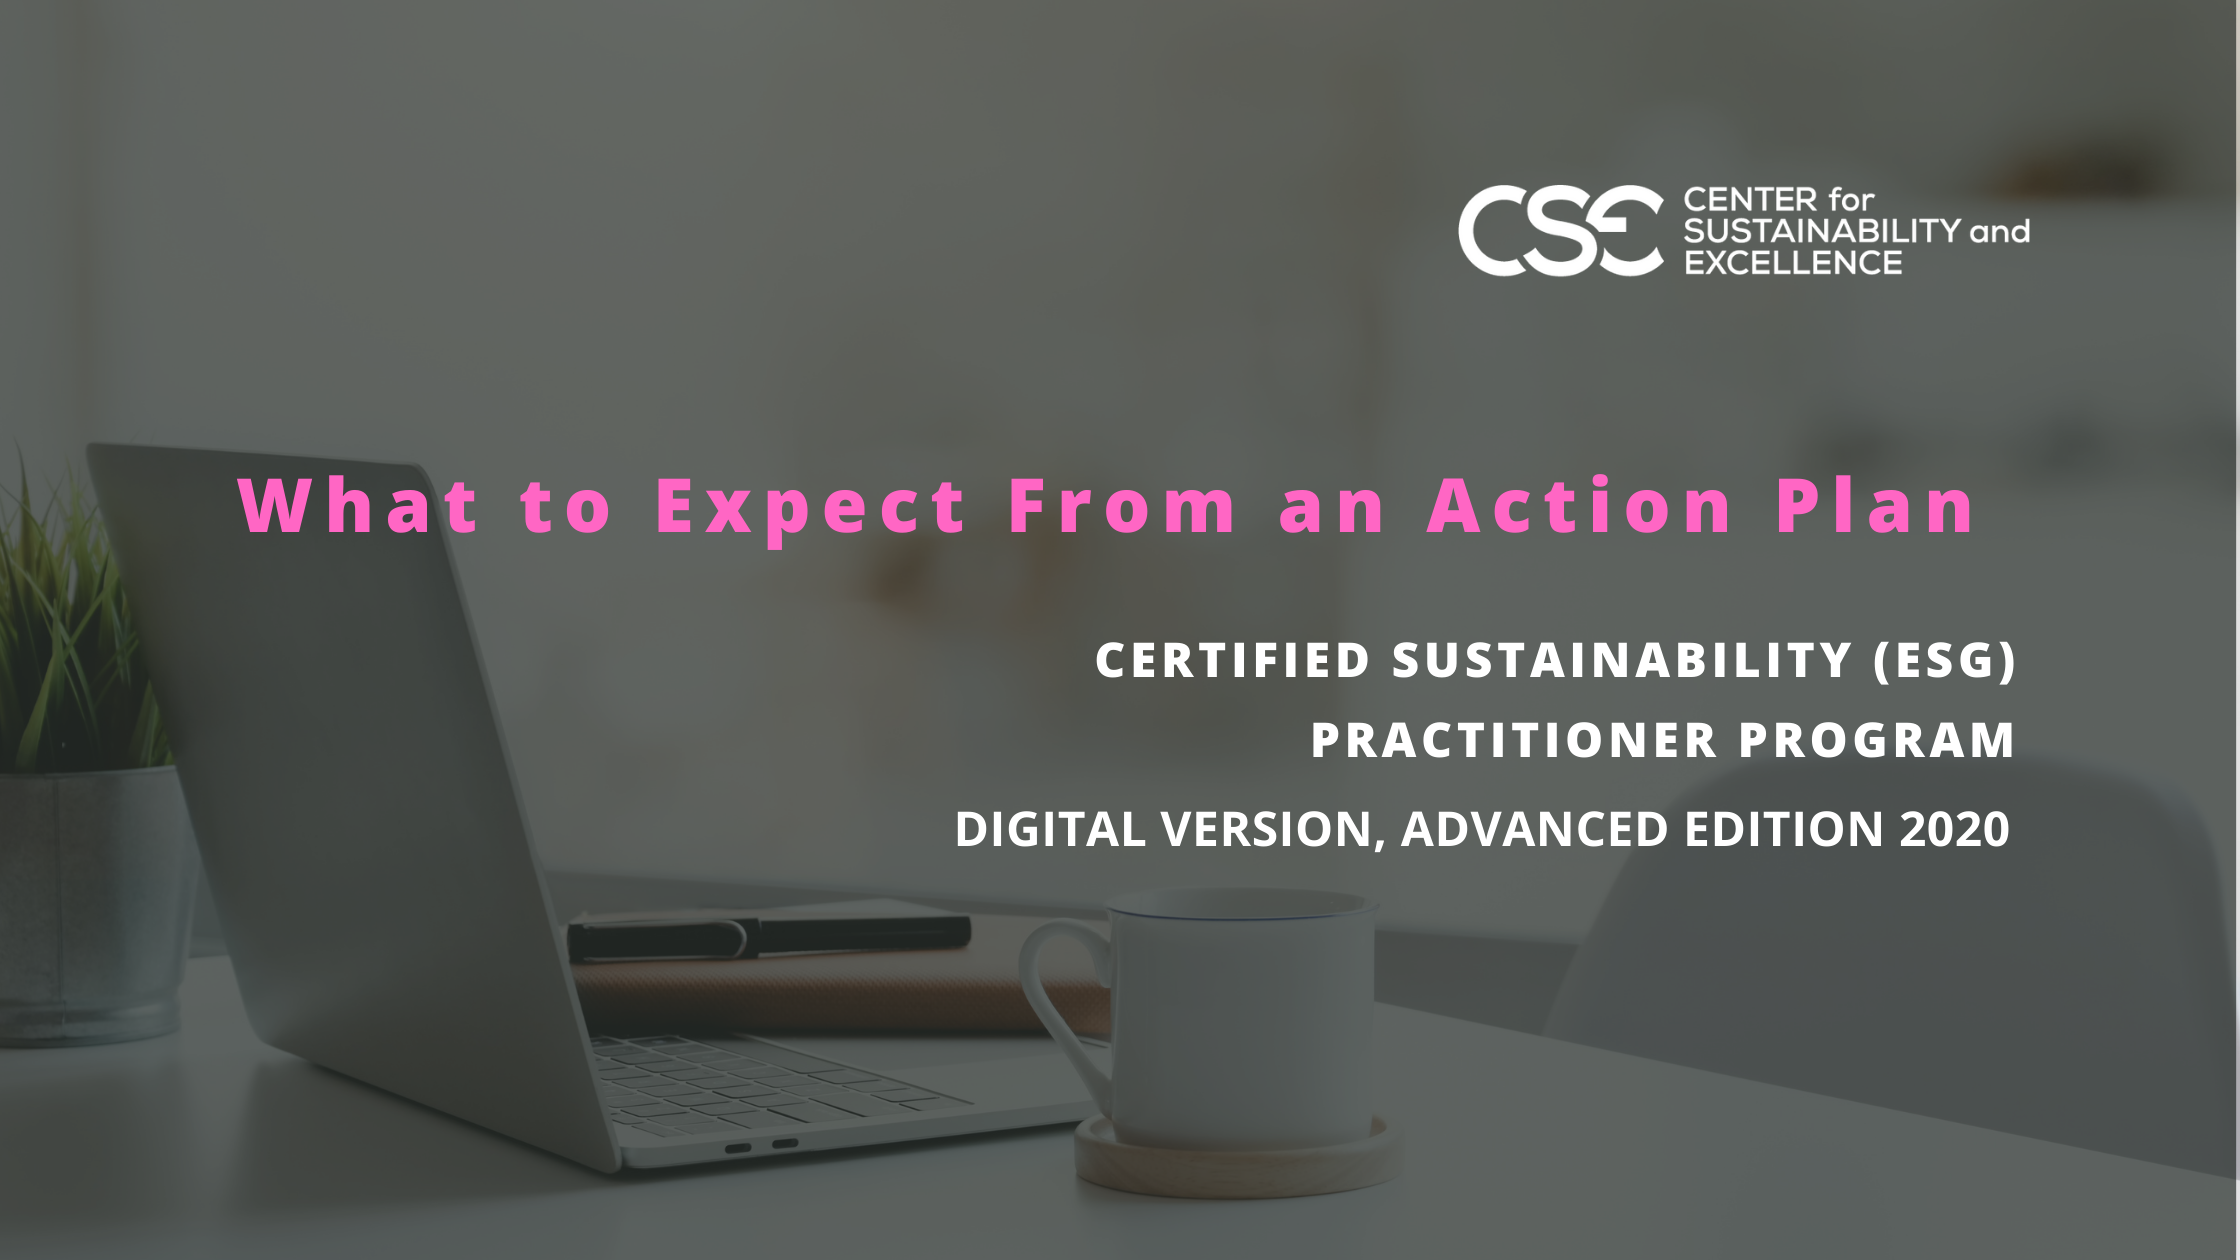 Part 1 in our series What to Expect from a Digital Sustainability Training